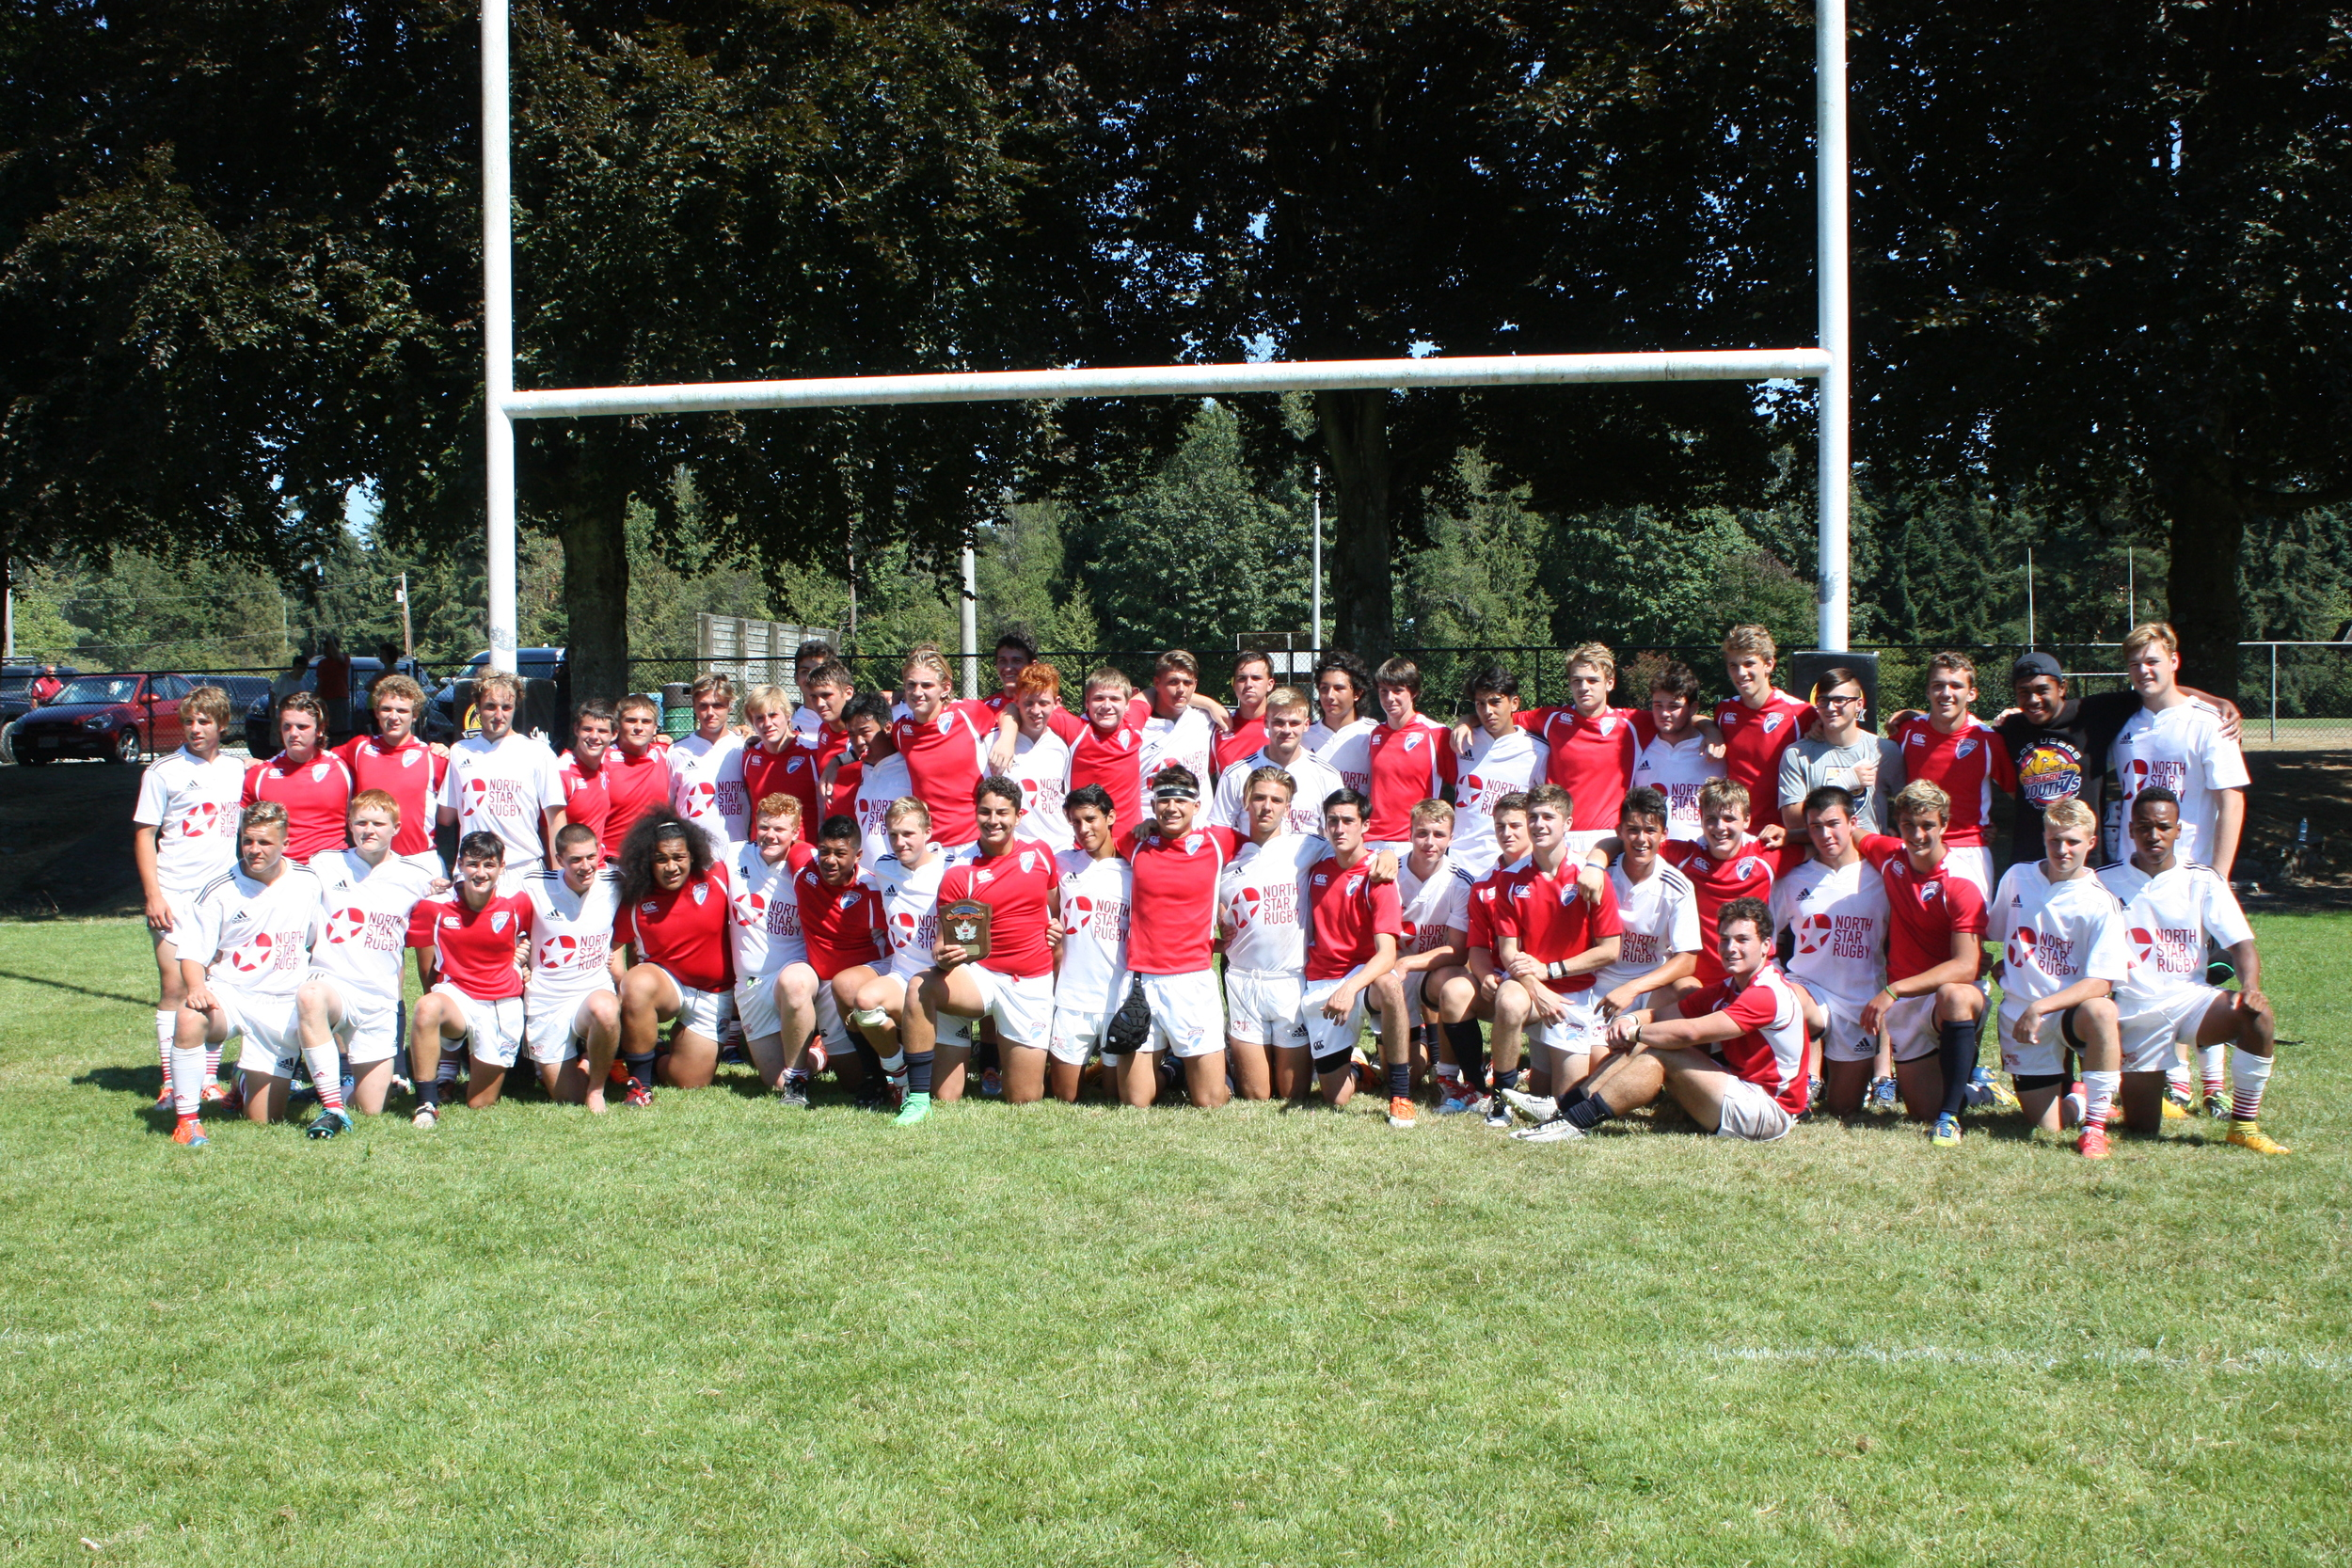 BC north star selects and USA's Eagle Impact Rugby Academy come together after a hard fought match